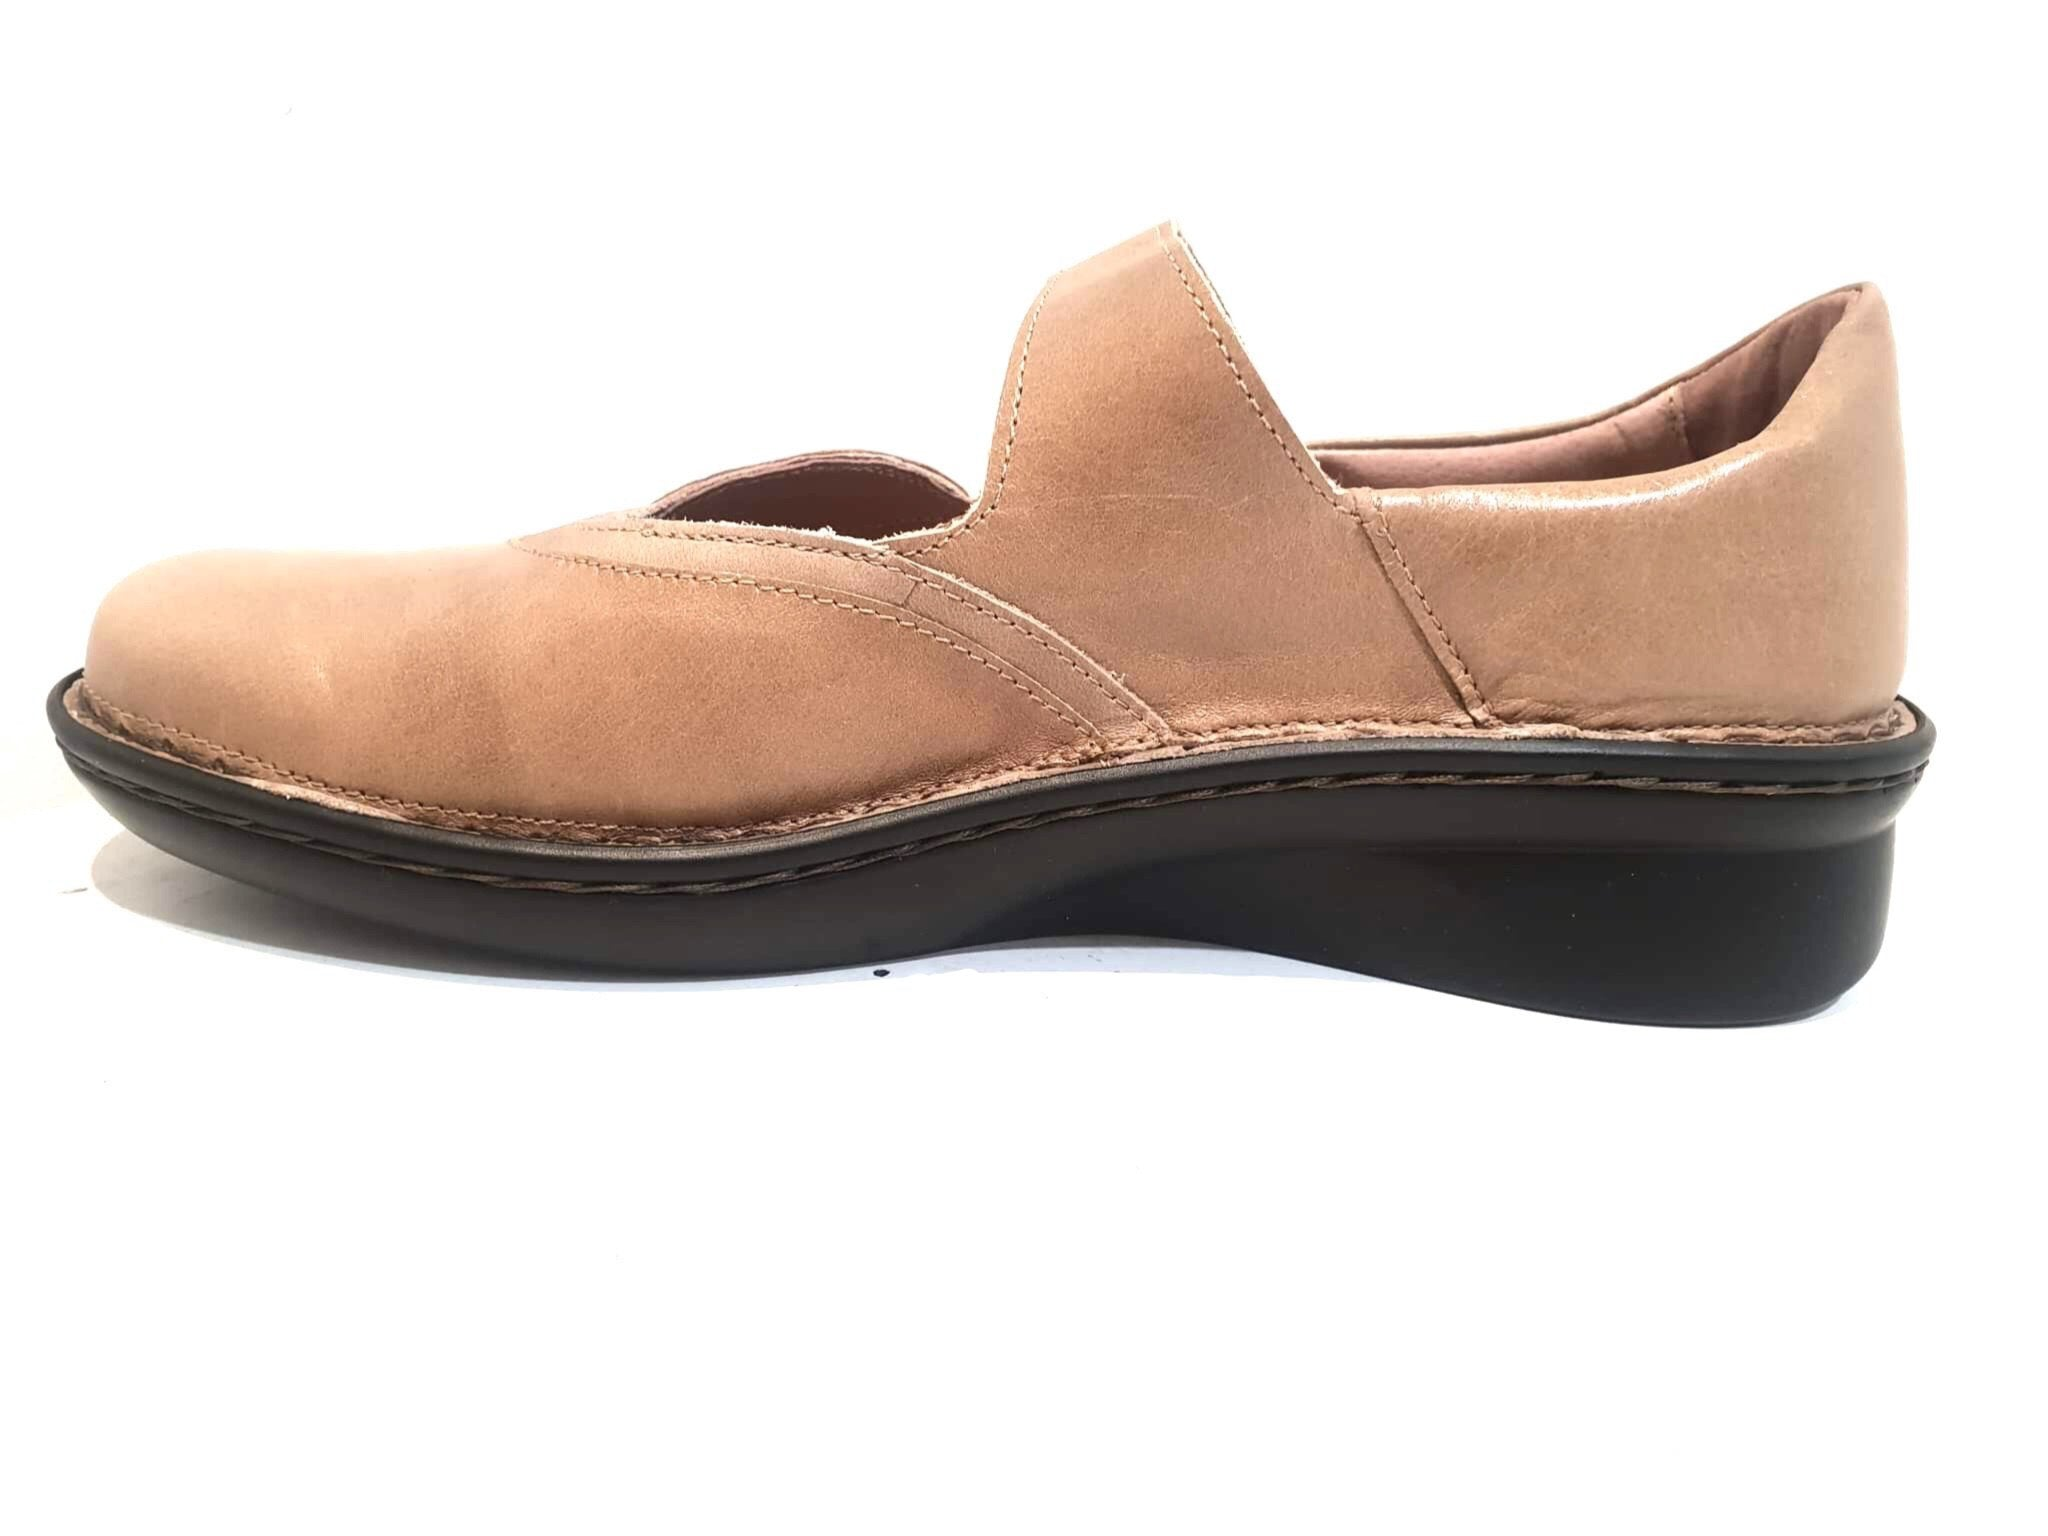 Naot Conga Tan Khaki Latte Leather Velcro Mary Janes Ladies Shoes Made In Israel